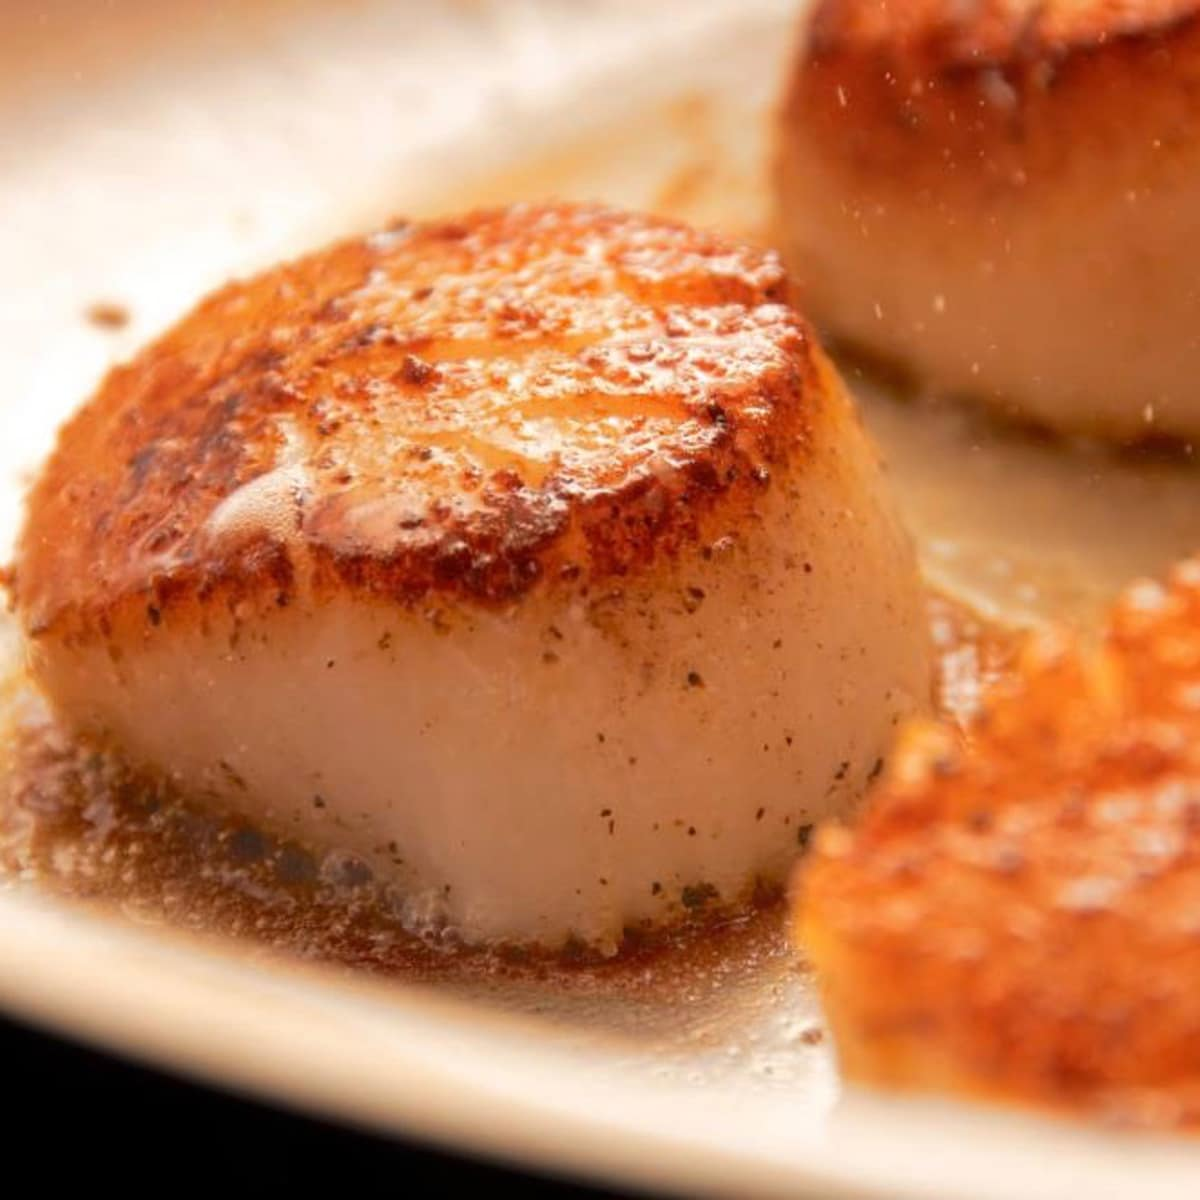 Dining out for Life Charivari scallop